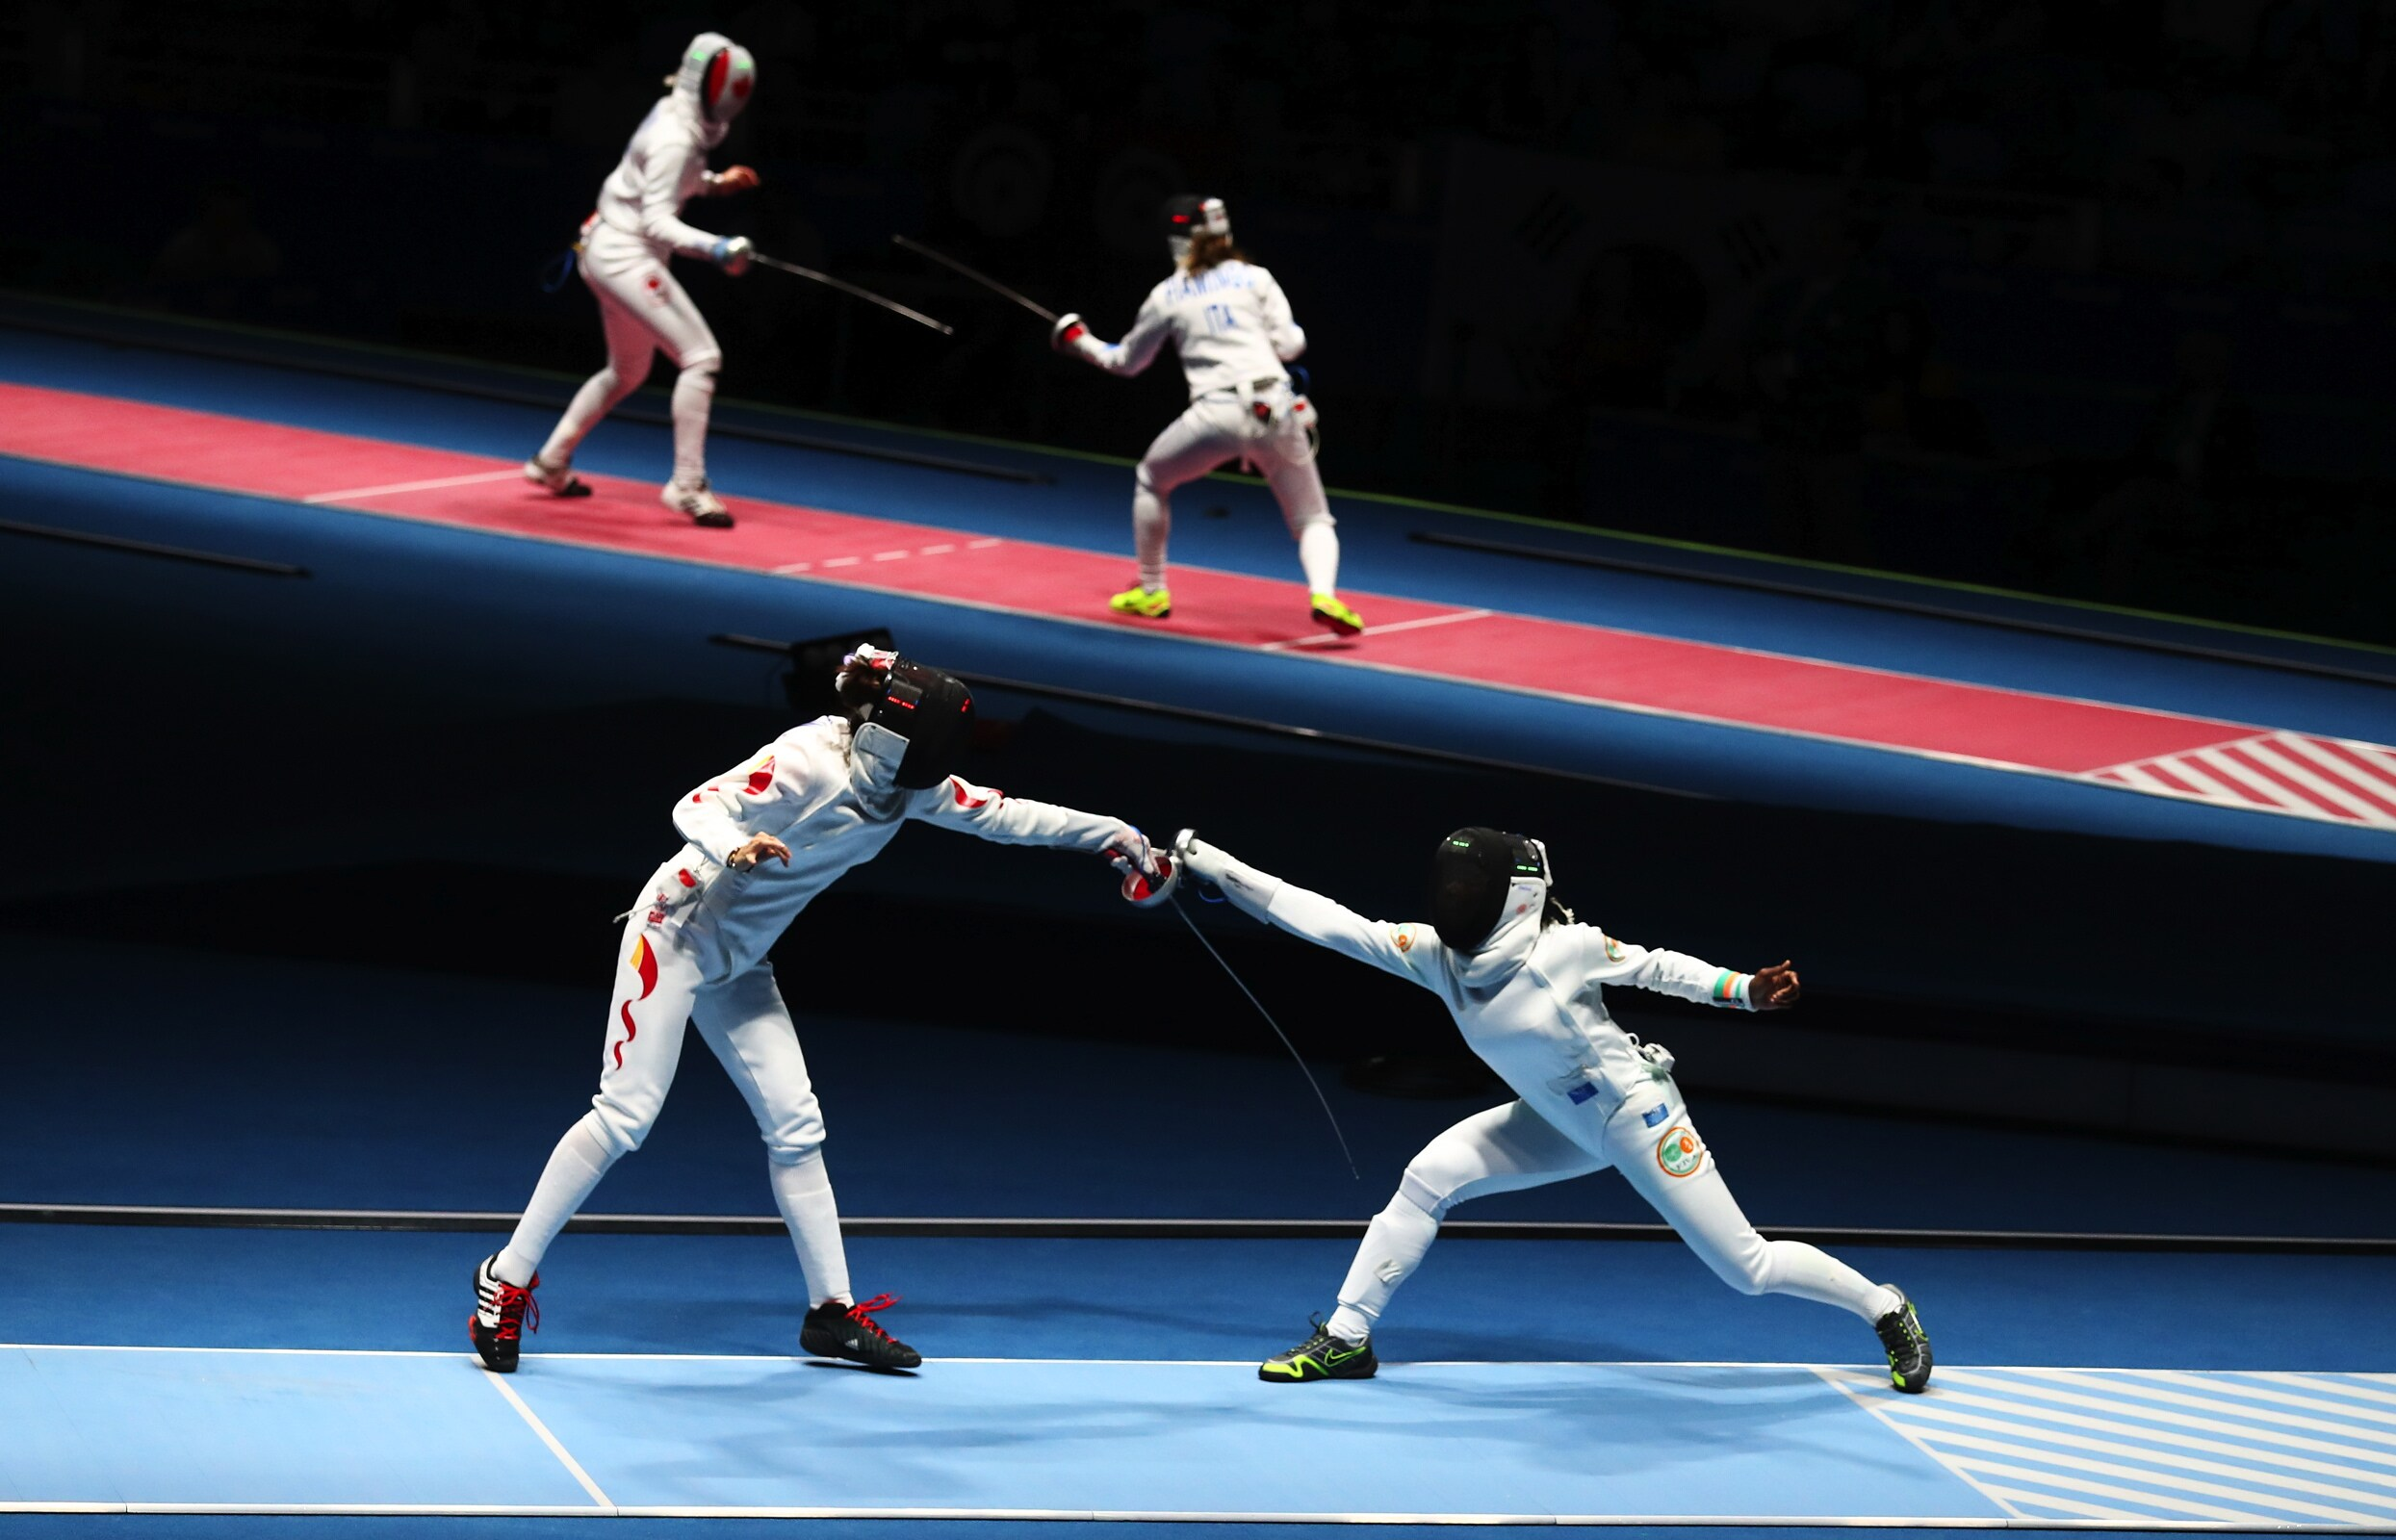 Women's Fencing Épée individual - Table of 32